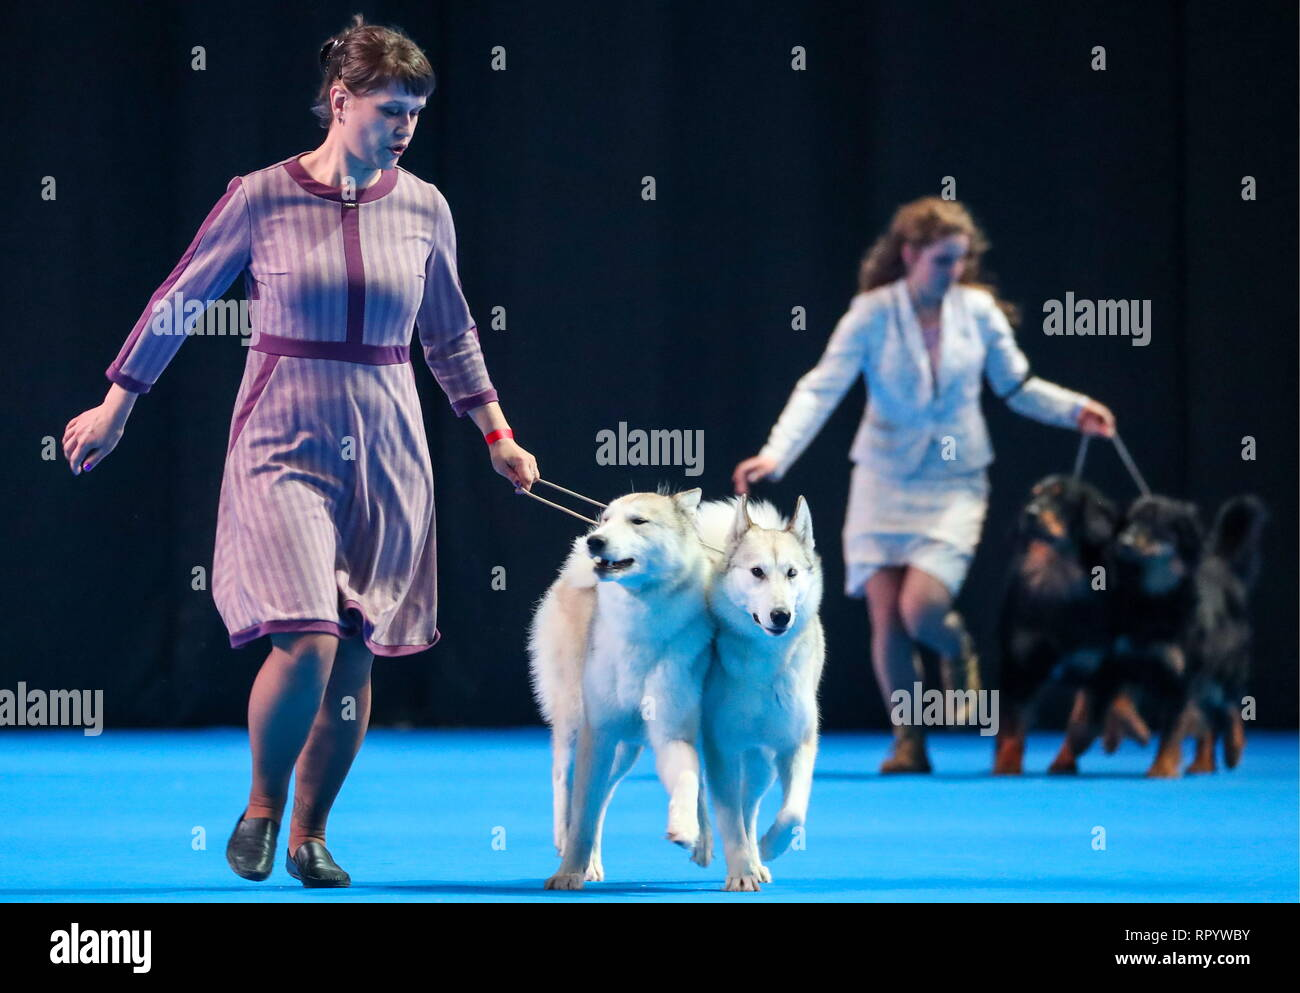 Dogs of the Laika breed take part in the Eurasia 2019